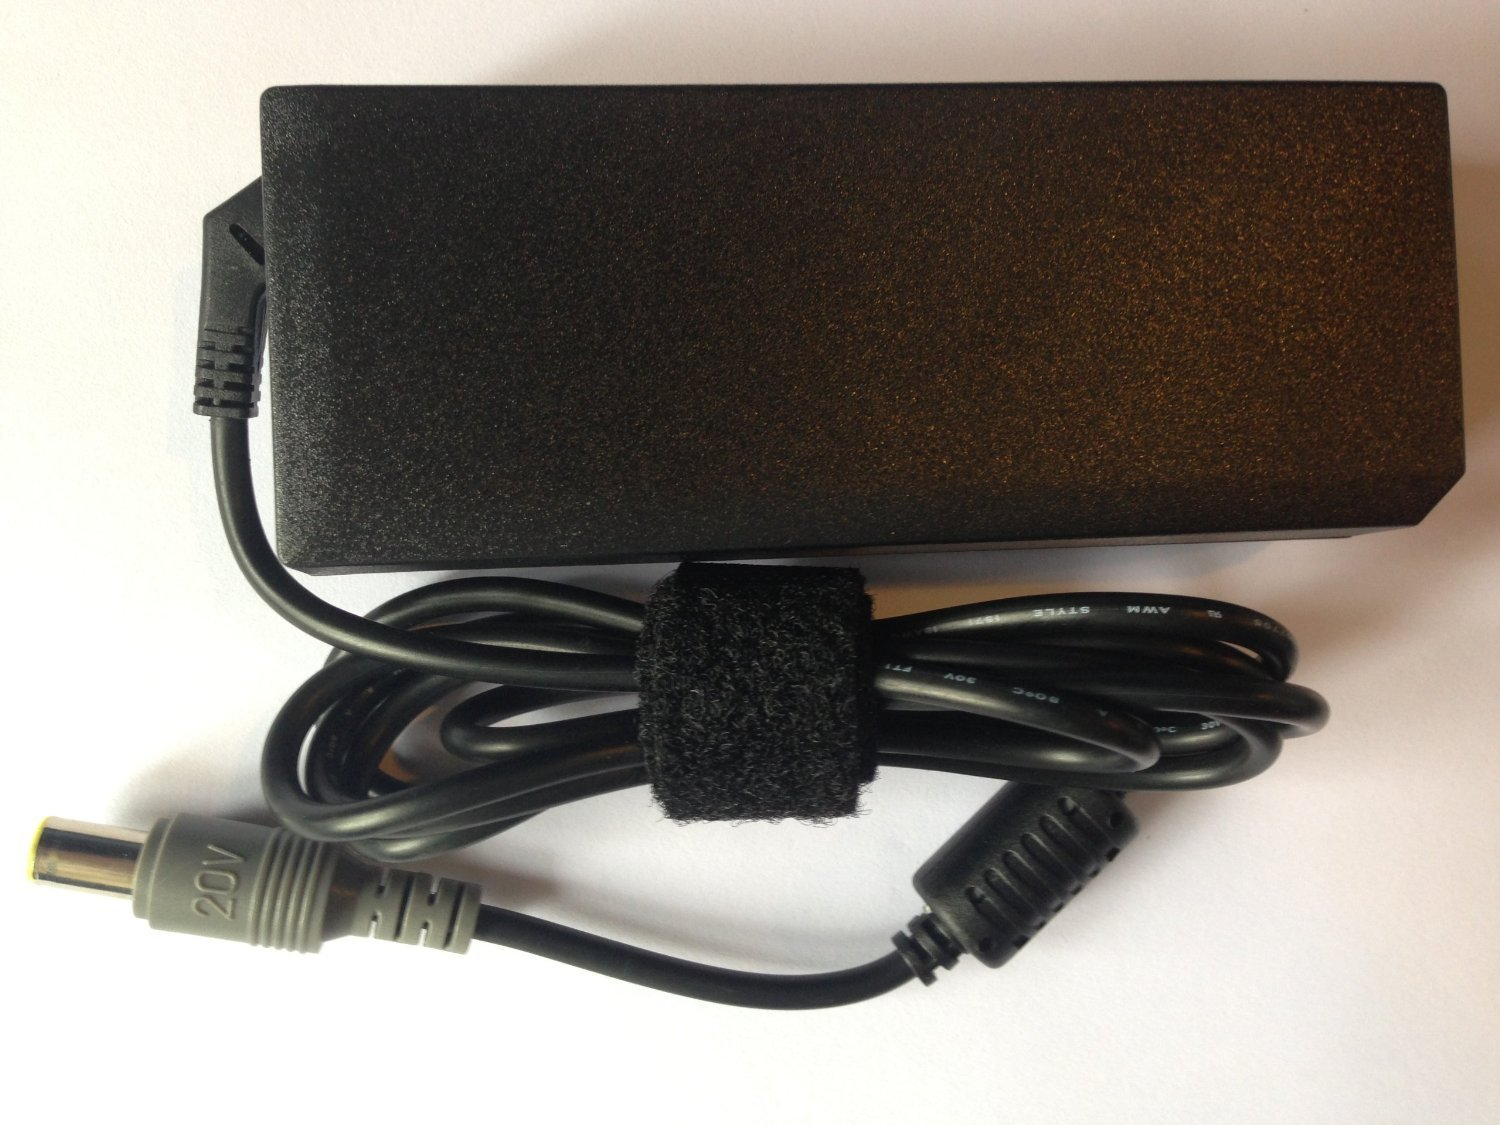 IBM & Lenovo 20v 4.5A 90w Replacement AC Adapter for IBM & Lenovo Notebook Models